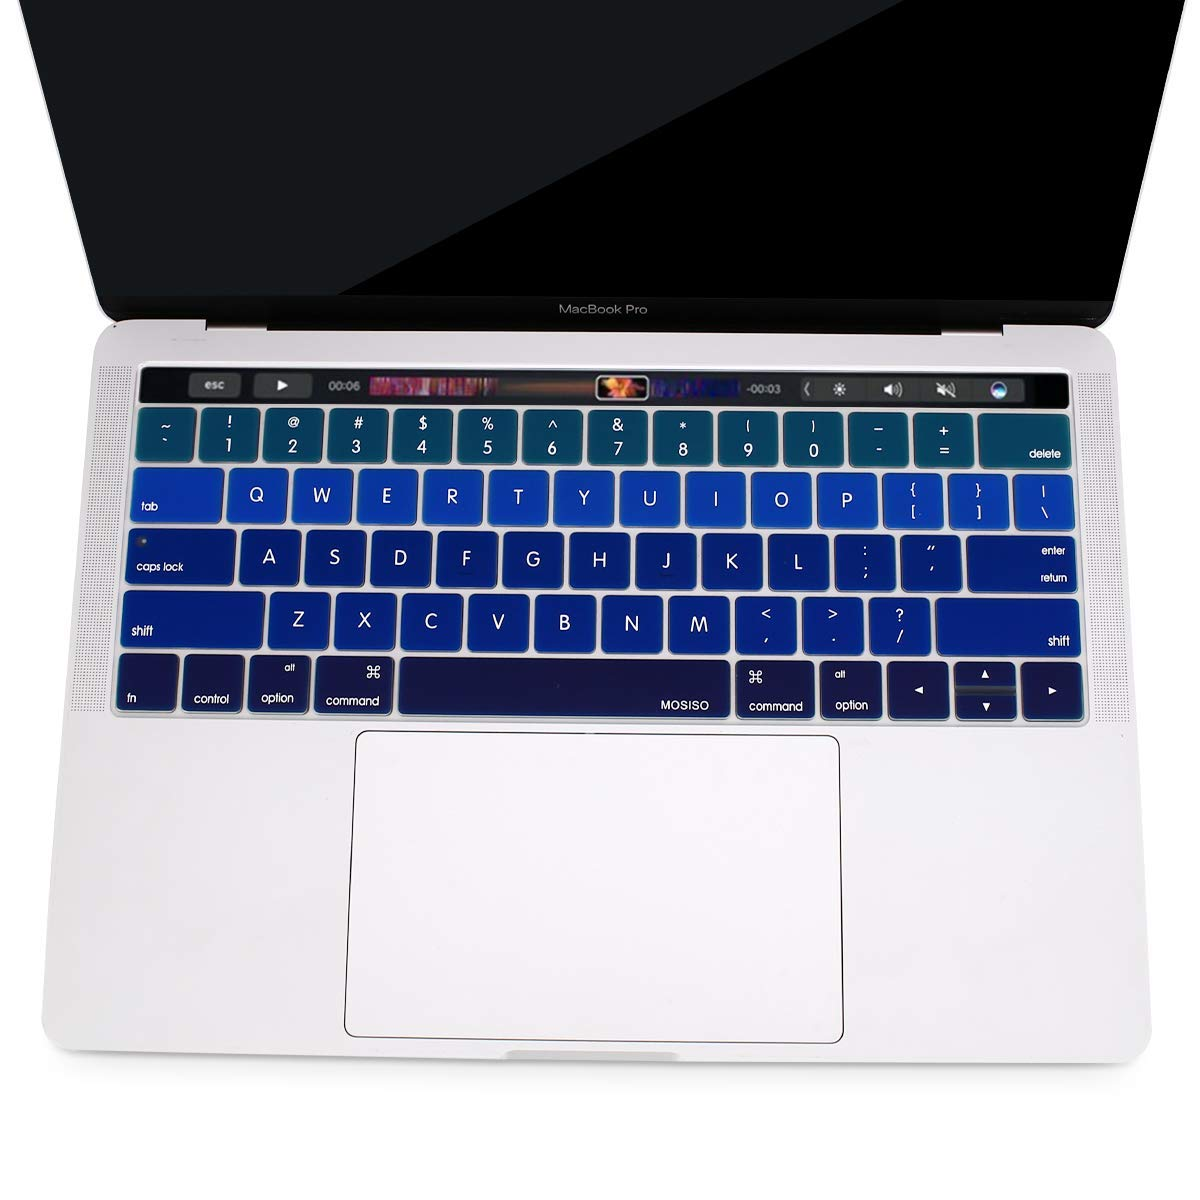 A1990//A1707 Mosiso Keyboard Cover Compatible Touch Bar 2018 2016 2017 Newest Version MacBook Pro 13 with Touch ID /& MacBook Pro 15 A1989//A1706 Rainbow